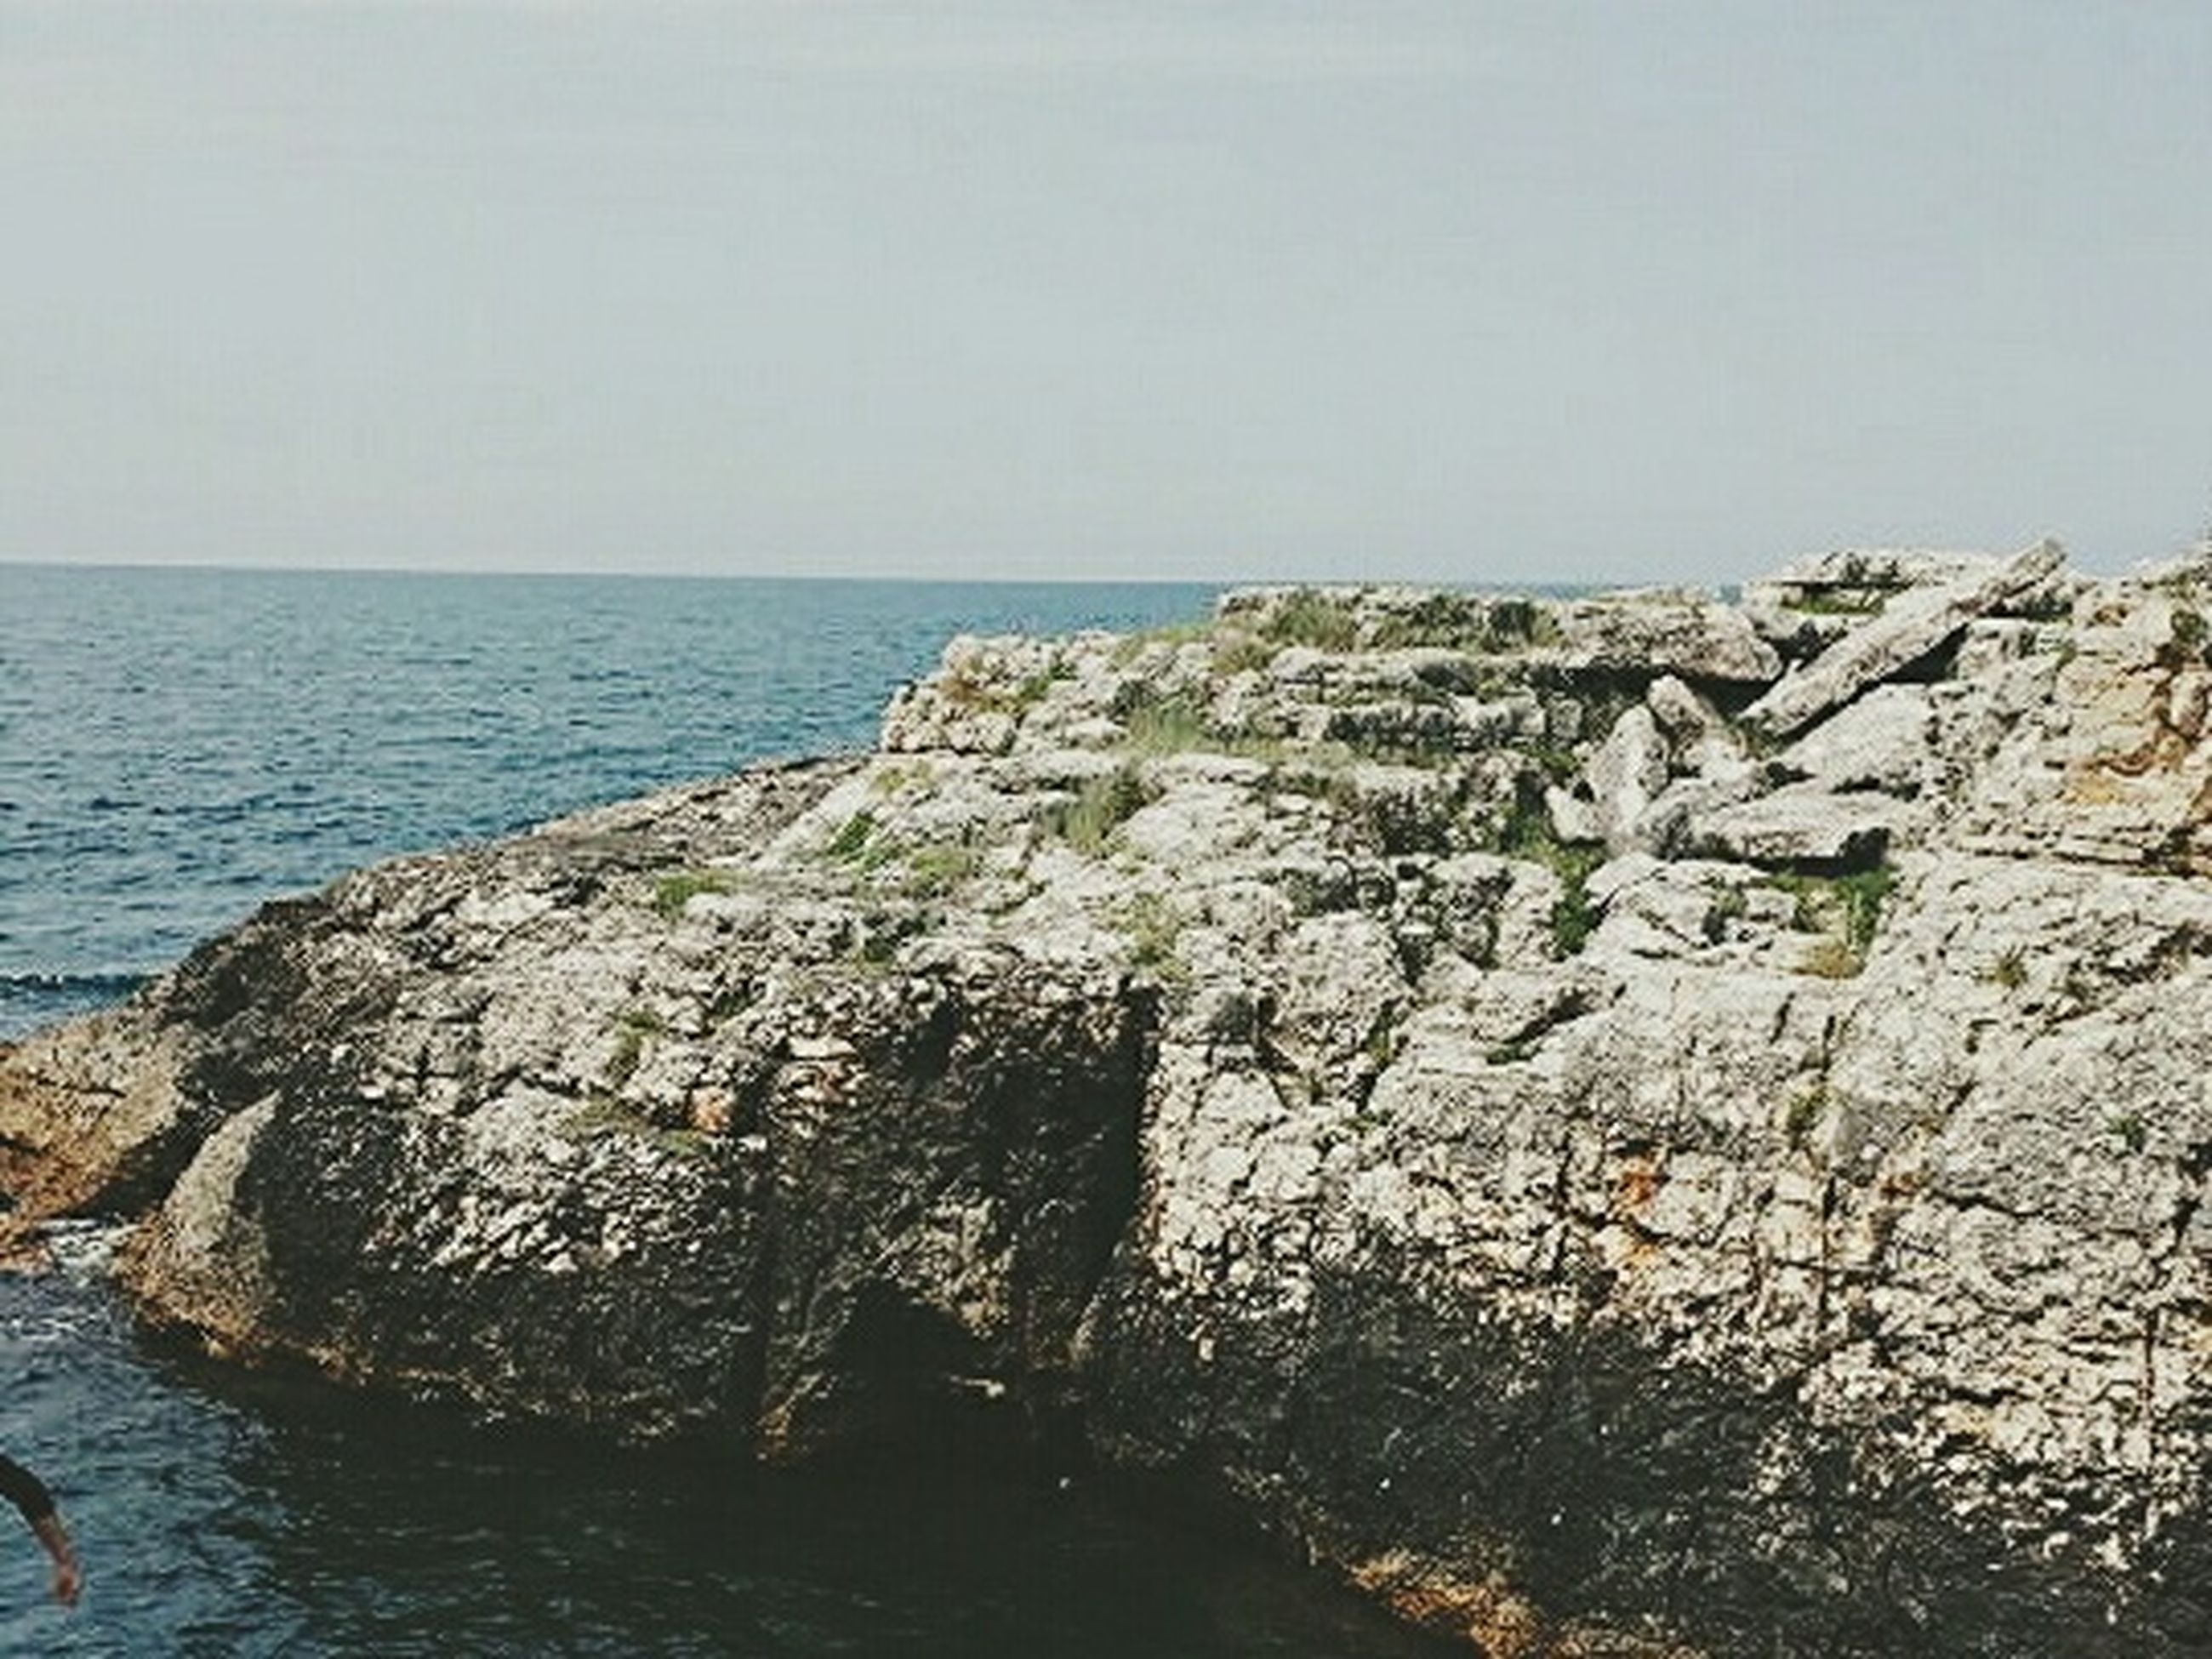 sea, water, horizon over water, rock formation, rock - object, clear sky, cliff, tranquil scene, scenics, tranquility, beauty in nature, nature, rock, copy space, day, coastline, idyllic, rocky, waterfront, sky